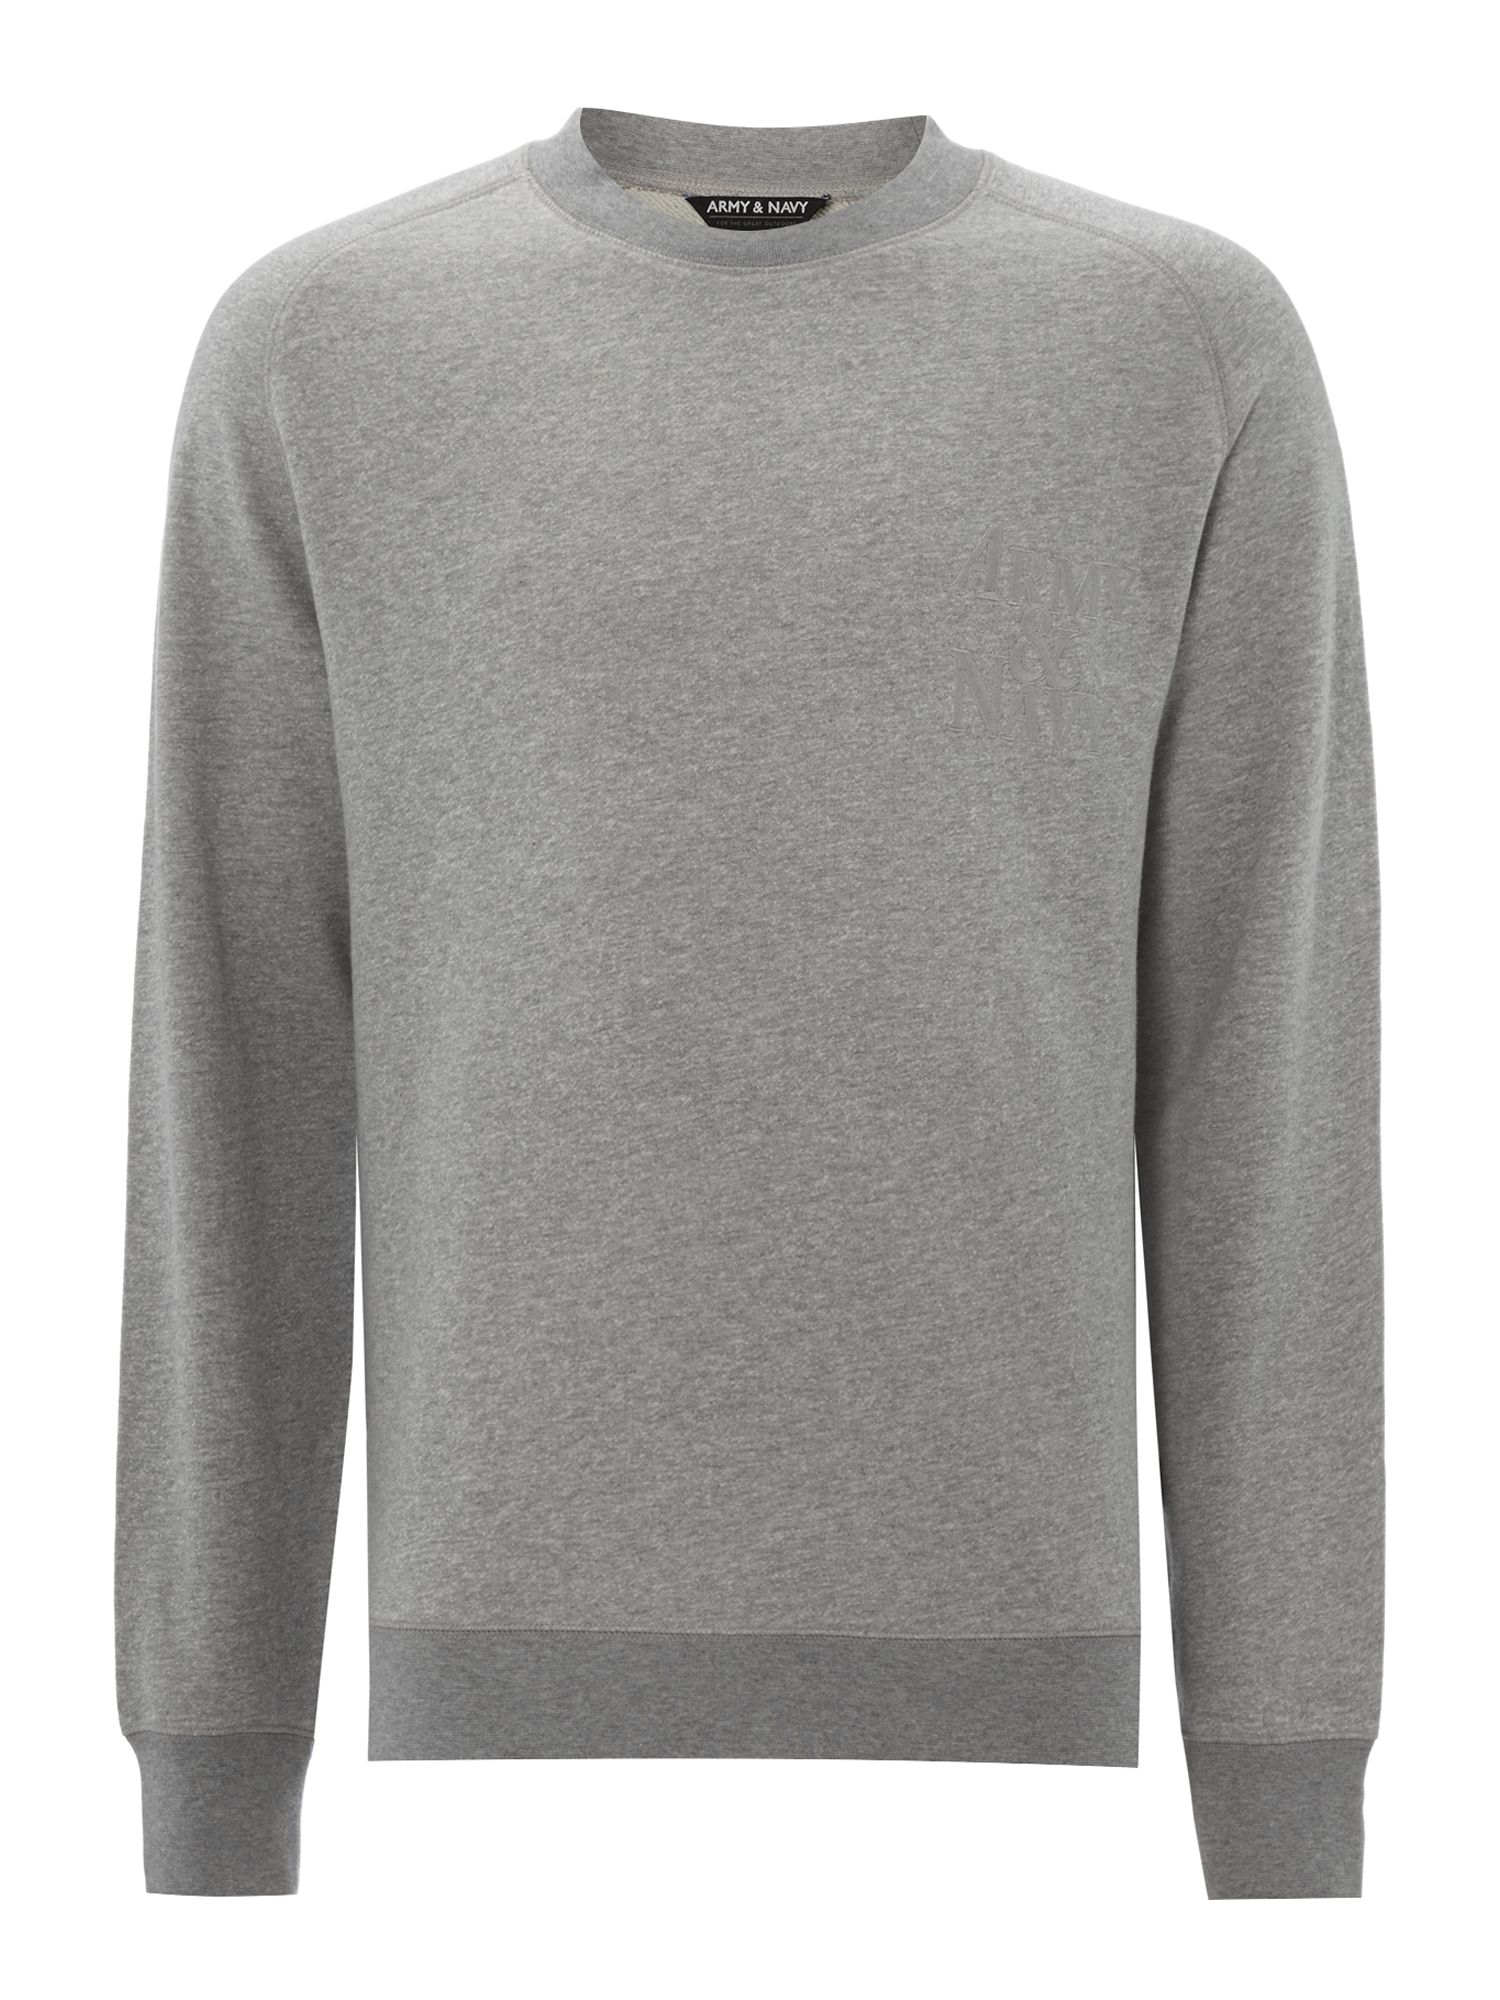 Jack crew neck jumper